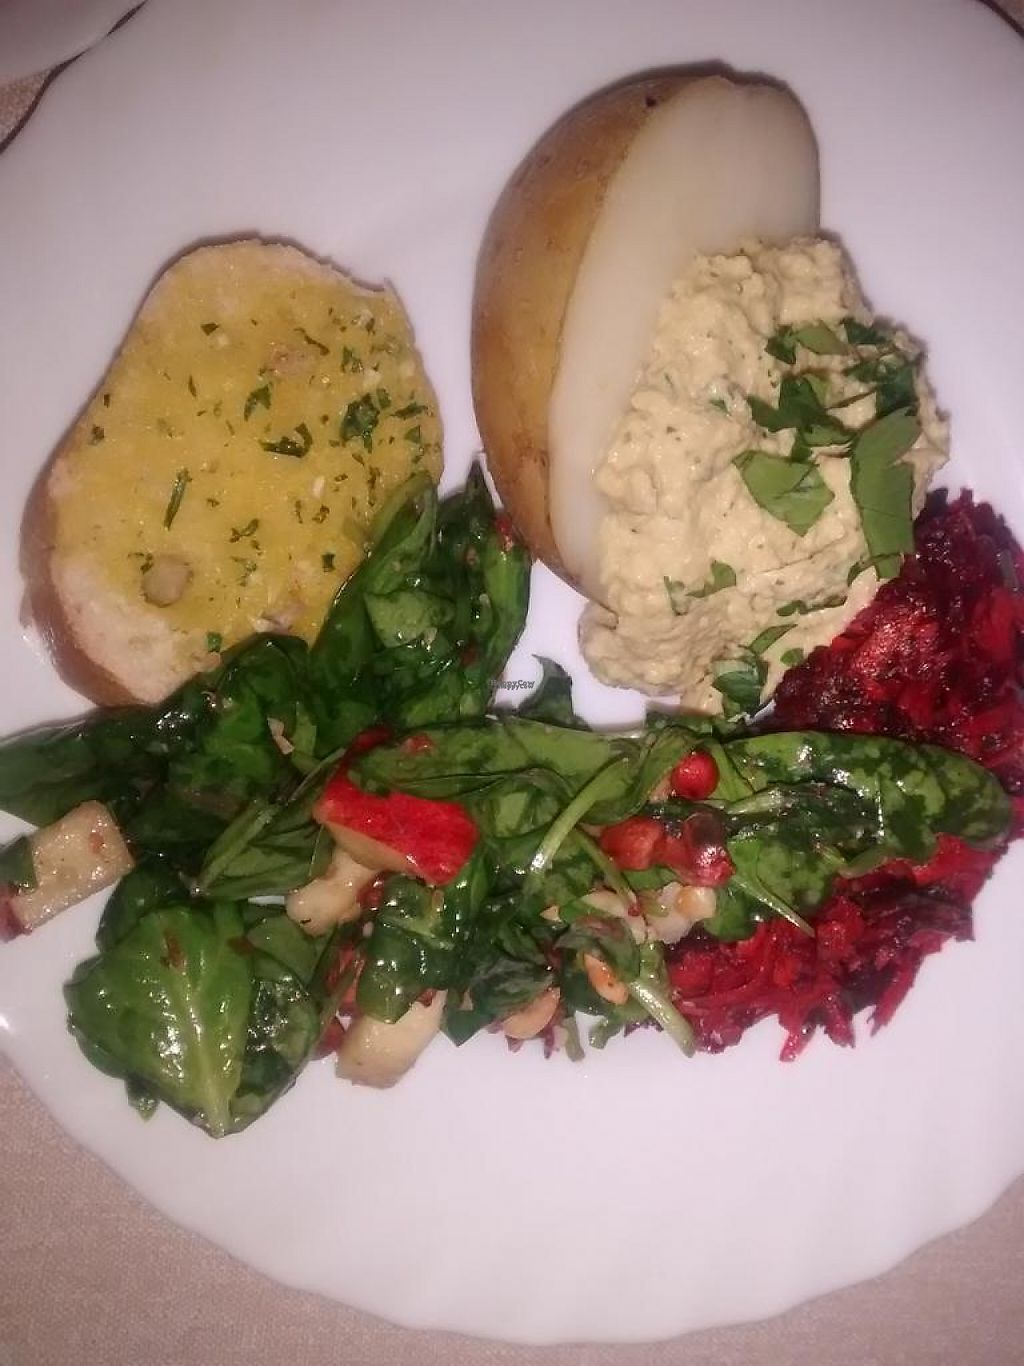 "Photo of Vegan People's Kitchen  by <a href=""/members/profile/TrixieFirecracker"">TrixieFirecracker</a> <br/>Baked potato, hummus, and salads - example of Main <br/> April 28, 2017  - <a href='/contact/abuse/image/82643/253570'>Report</a>"